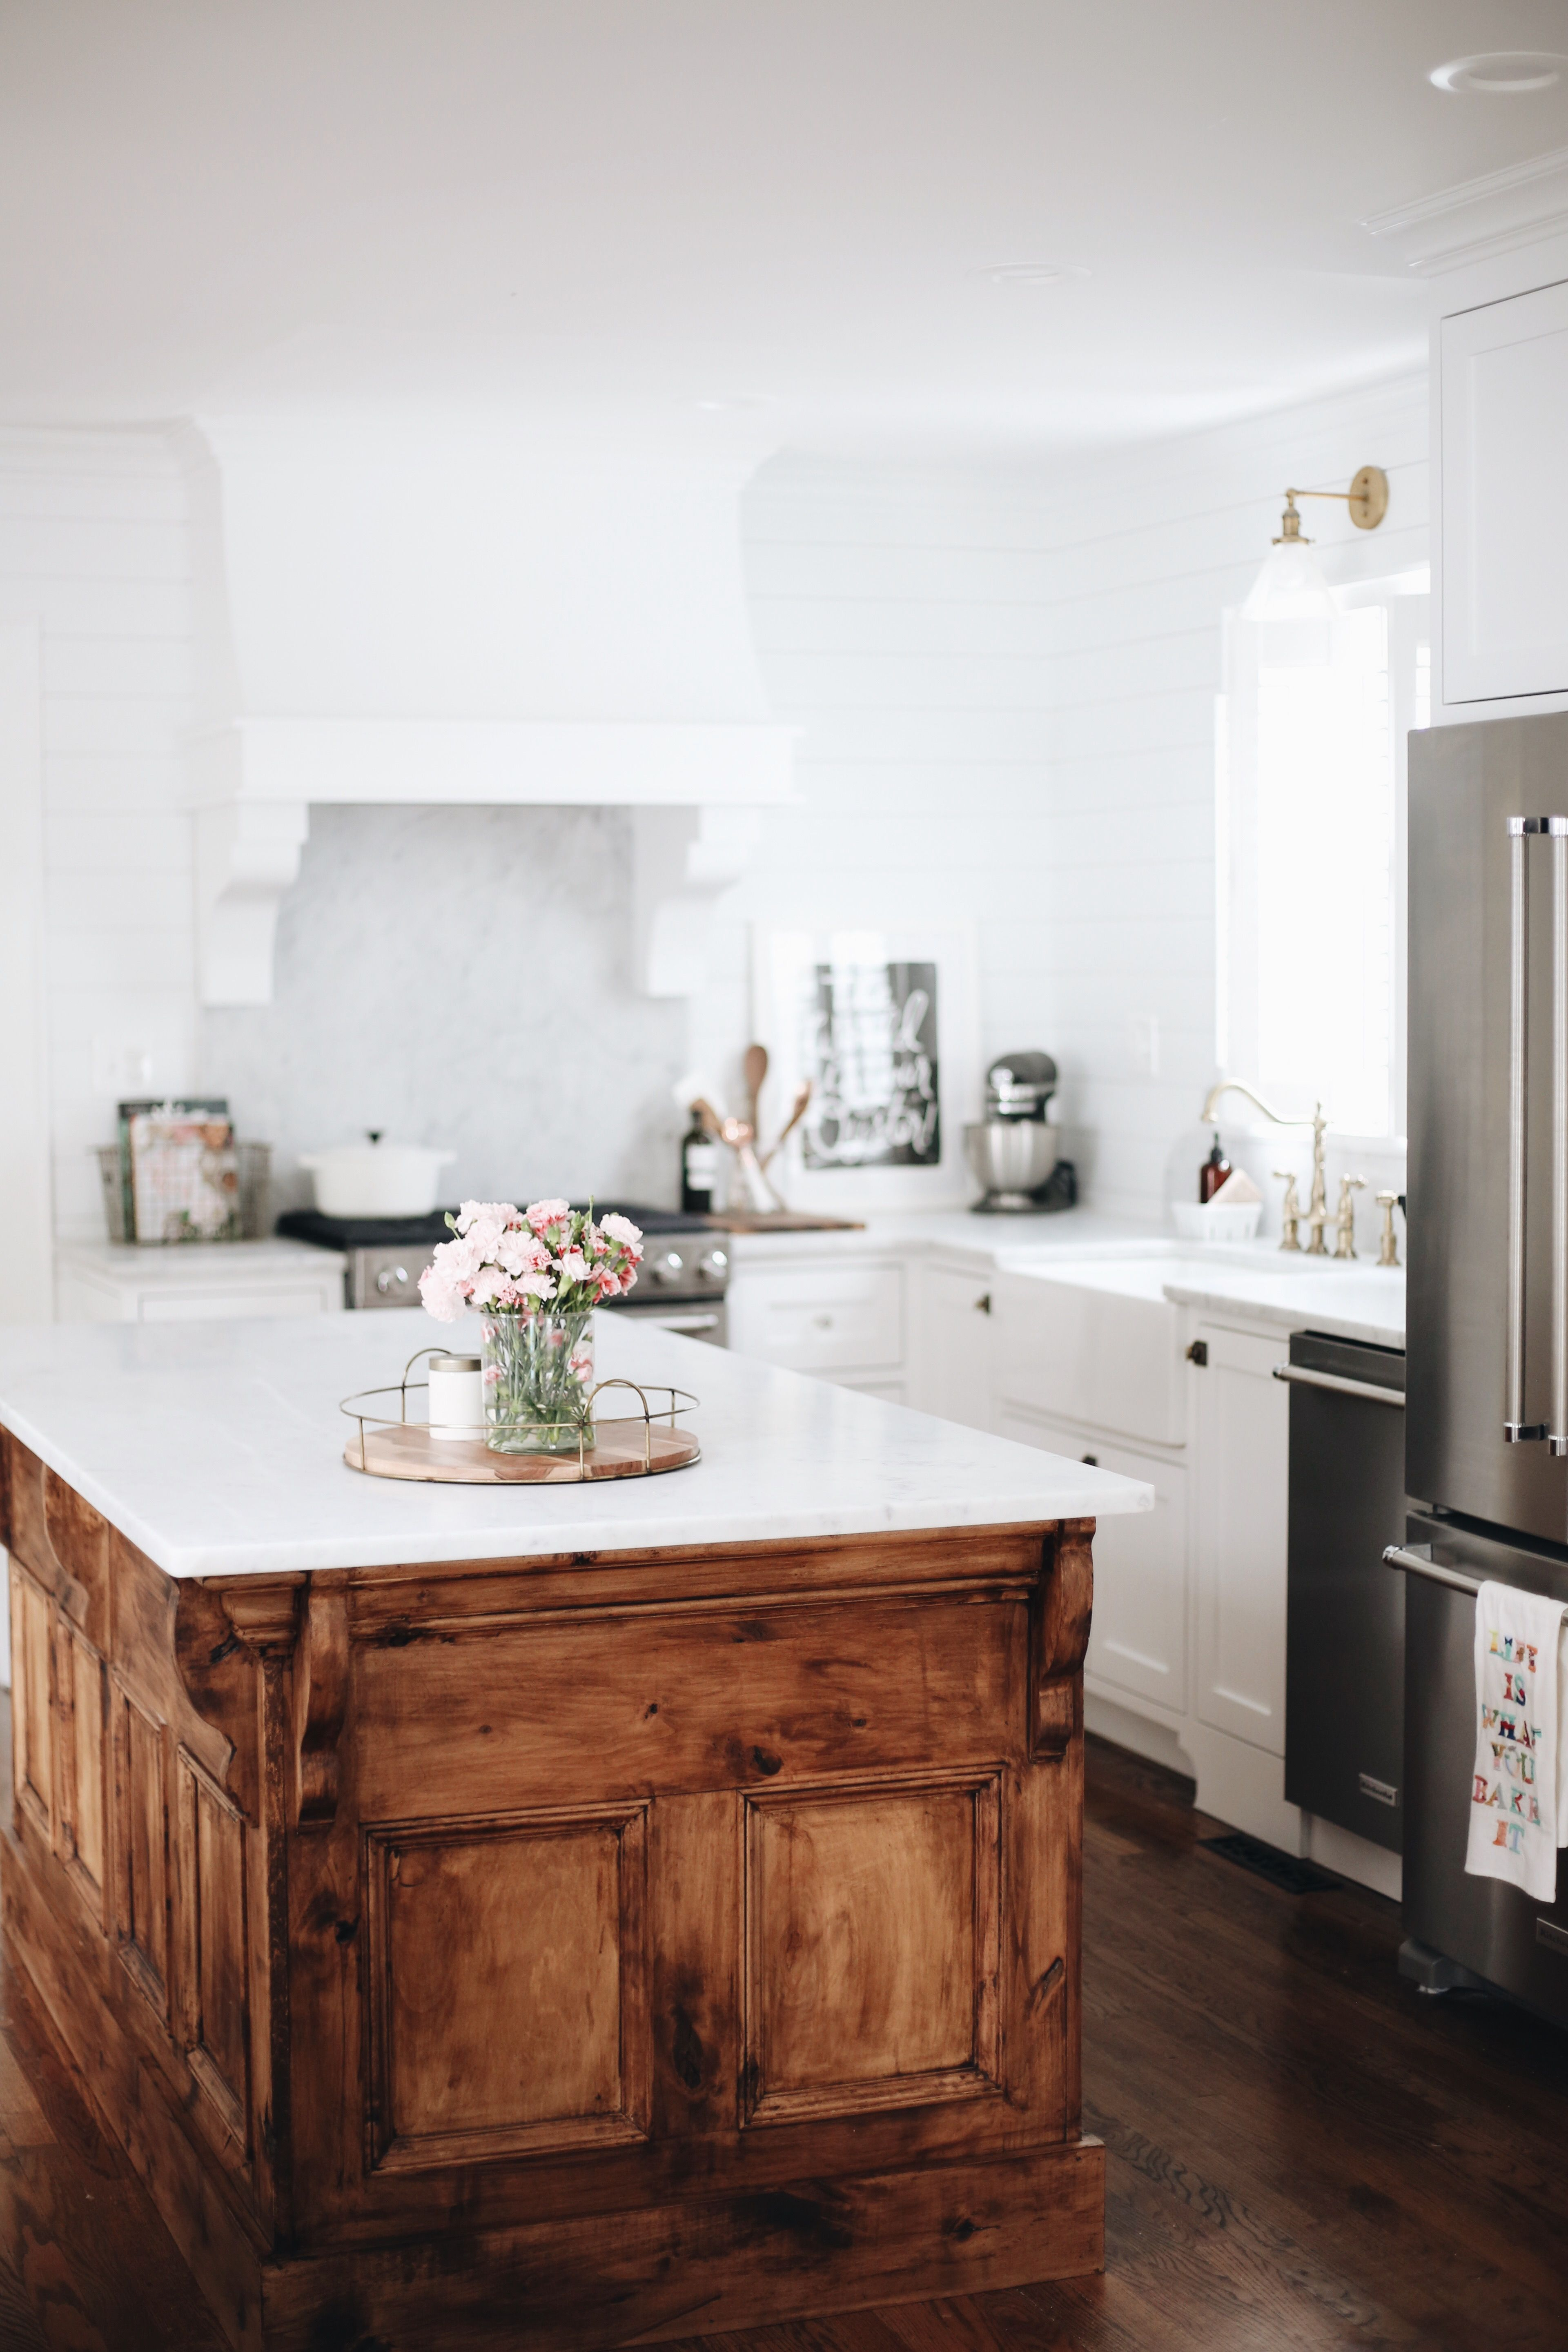 Our Kitchen Renovation Before & After | Home Inspiration | Pinterest ...